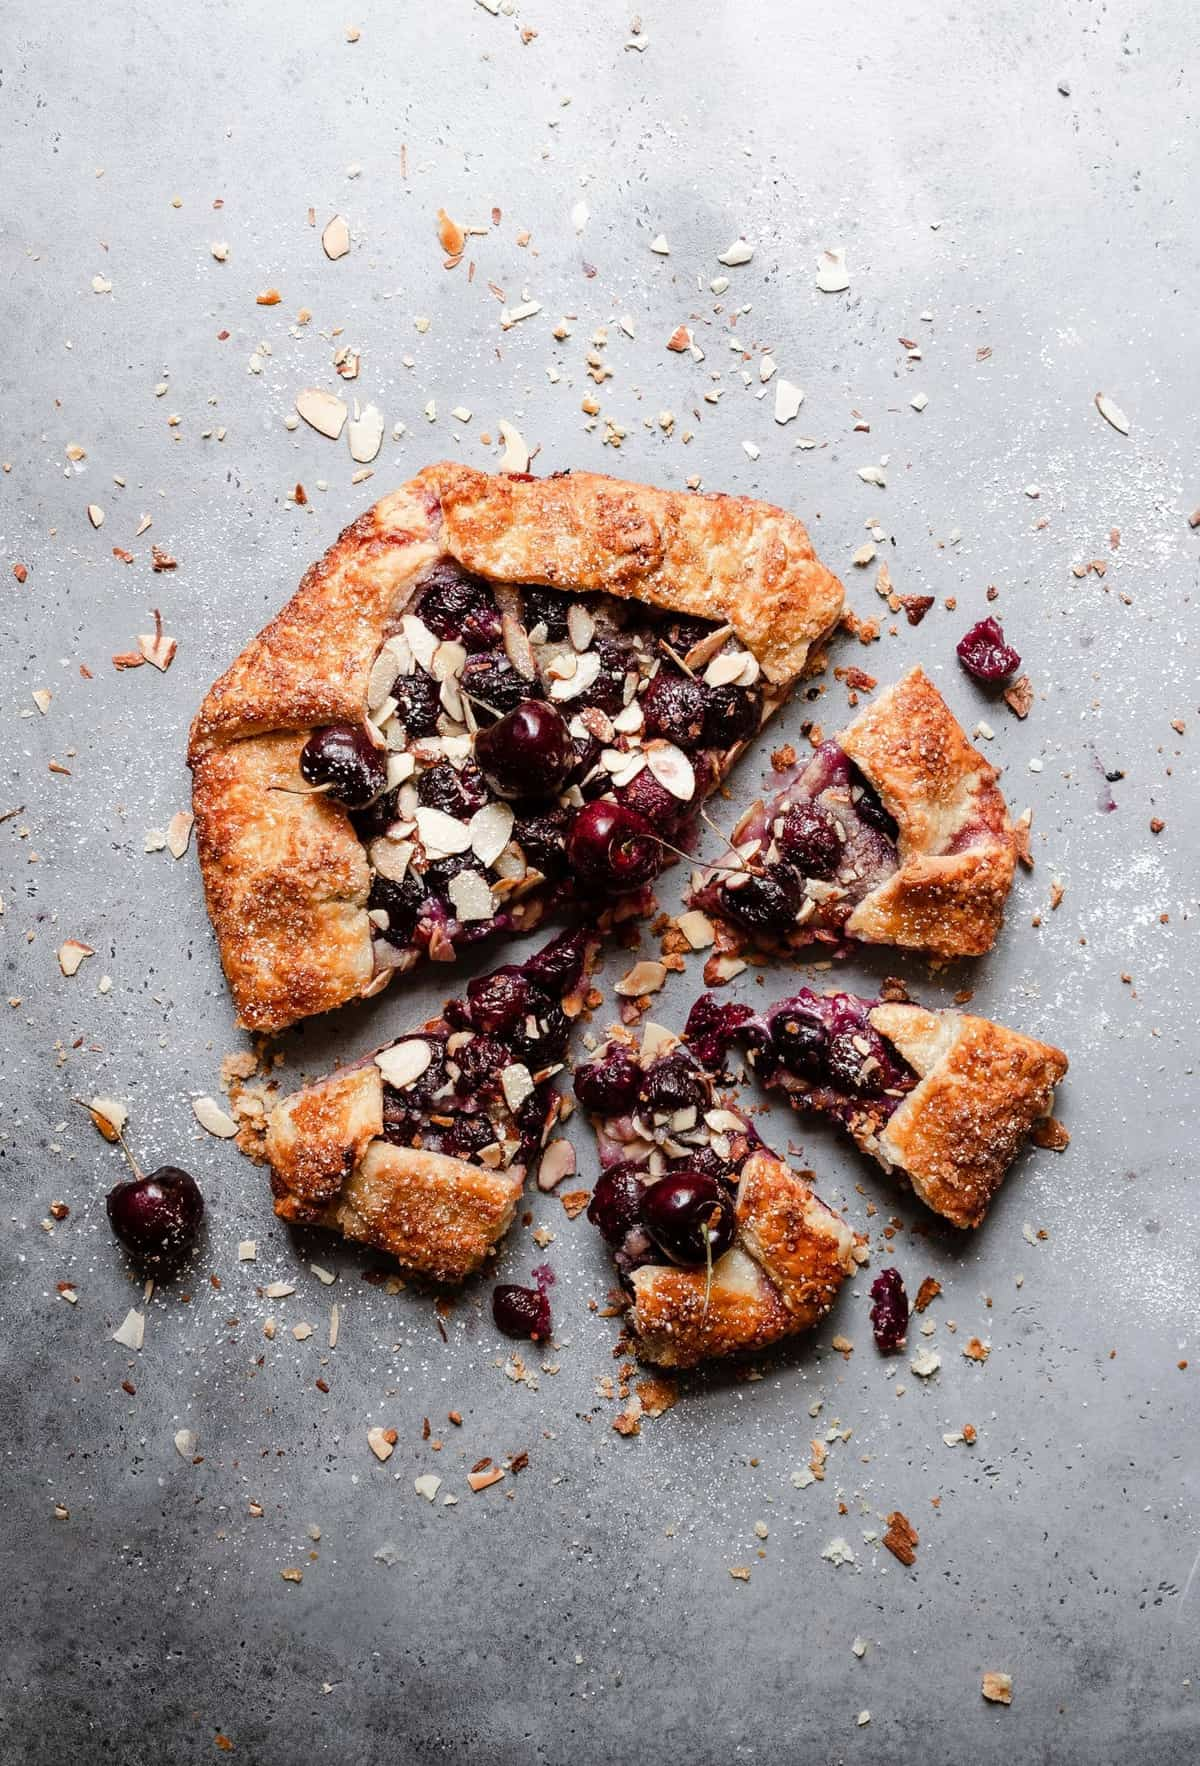 Cherry Galette layered with almond paste and topped with sweet Cheery filling